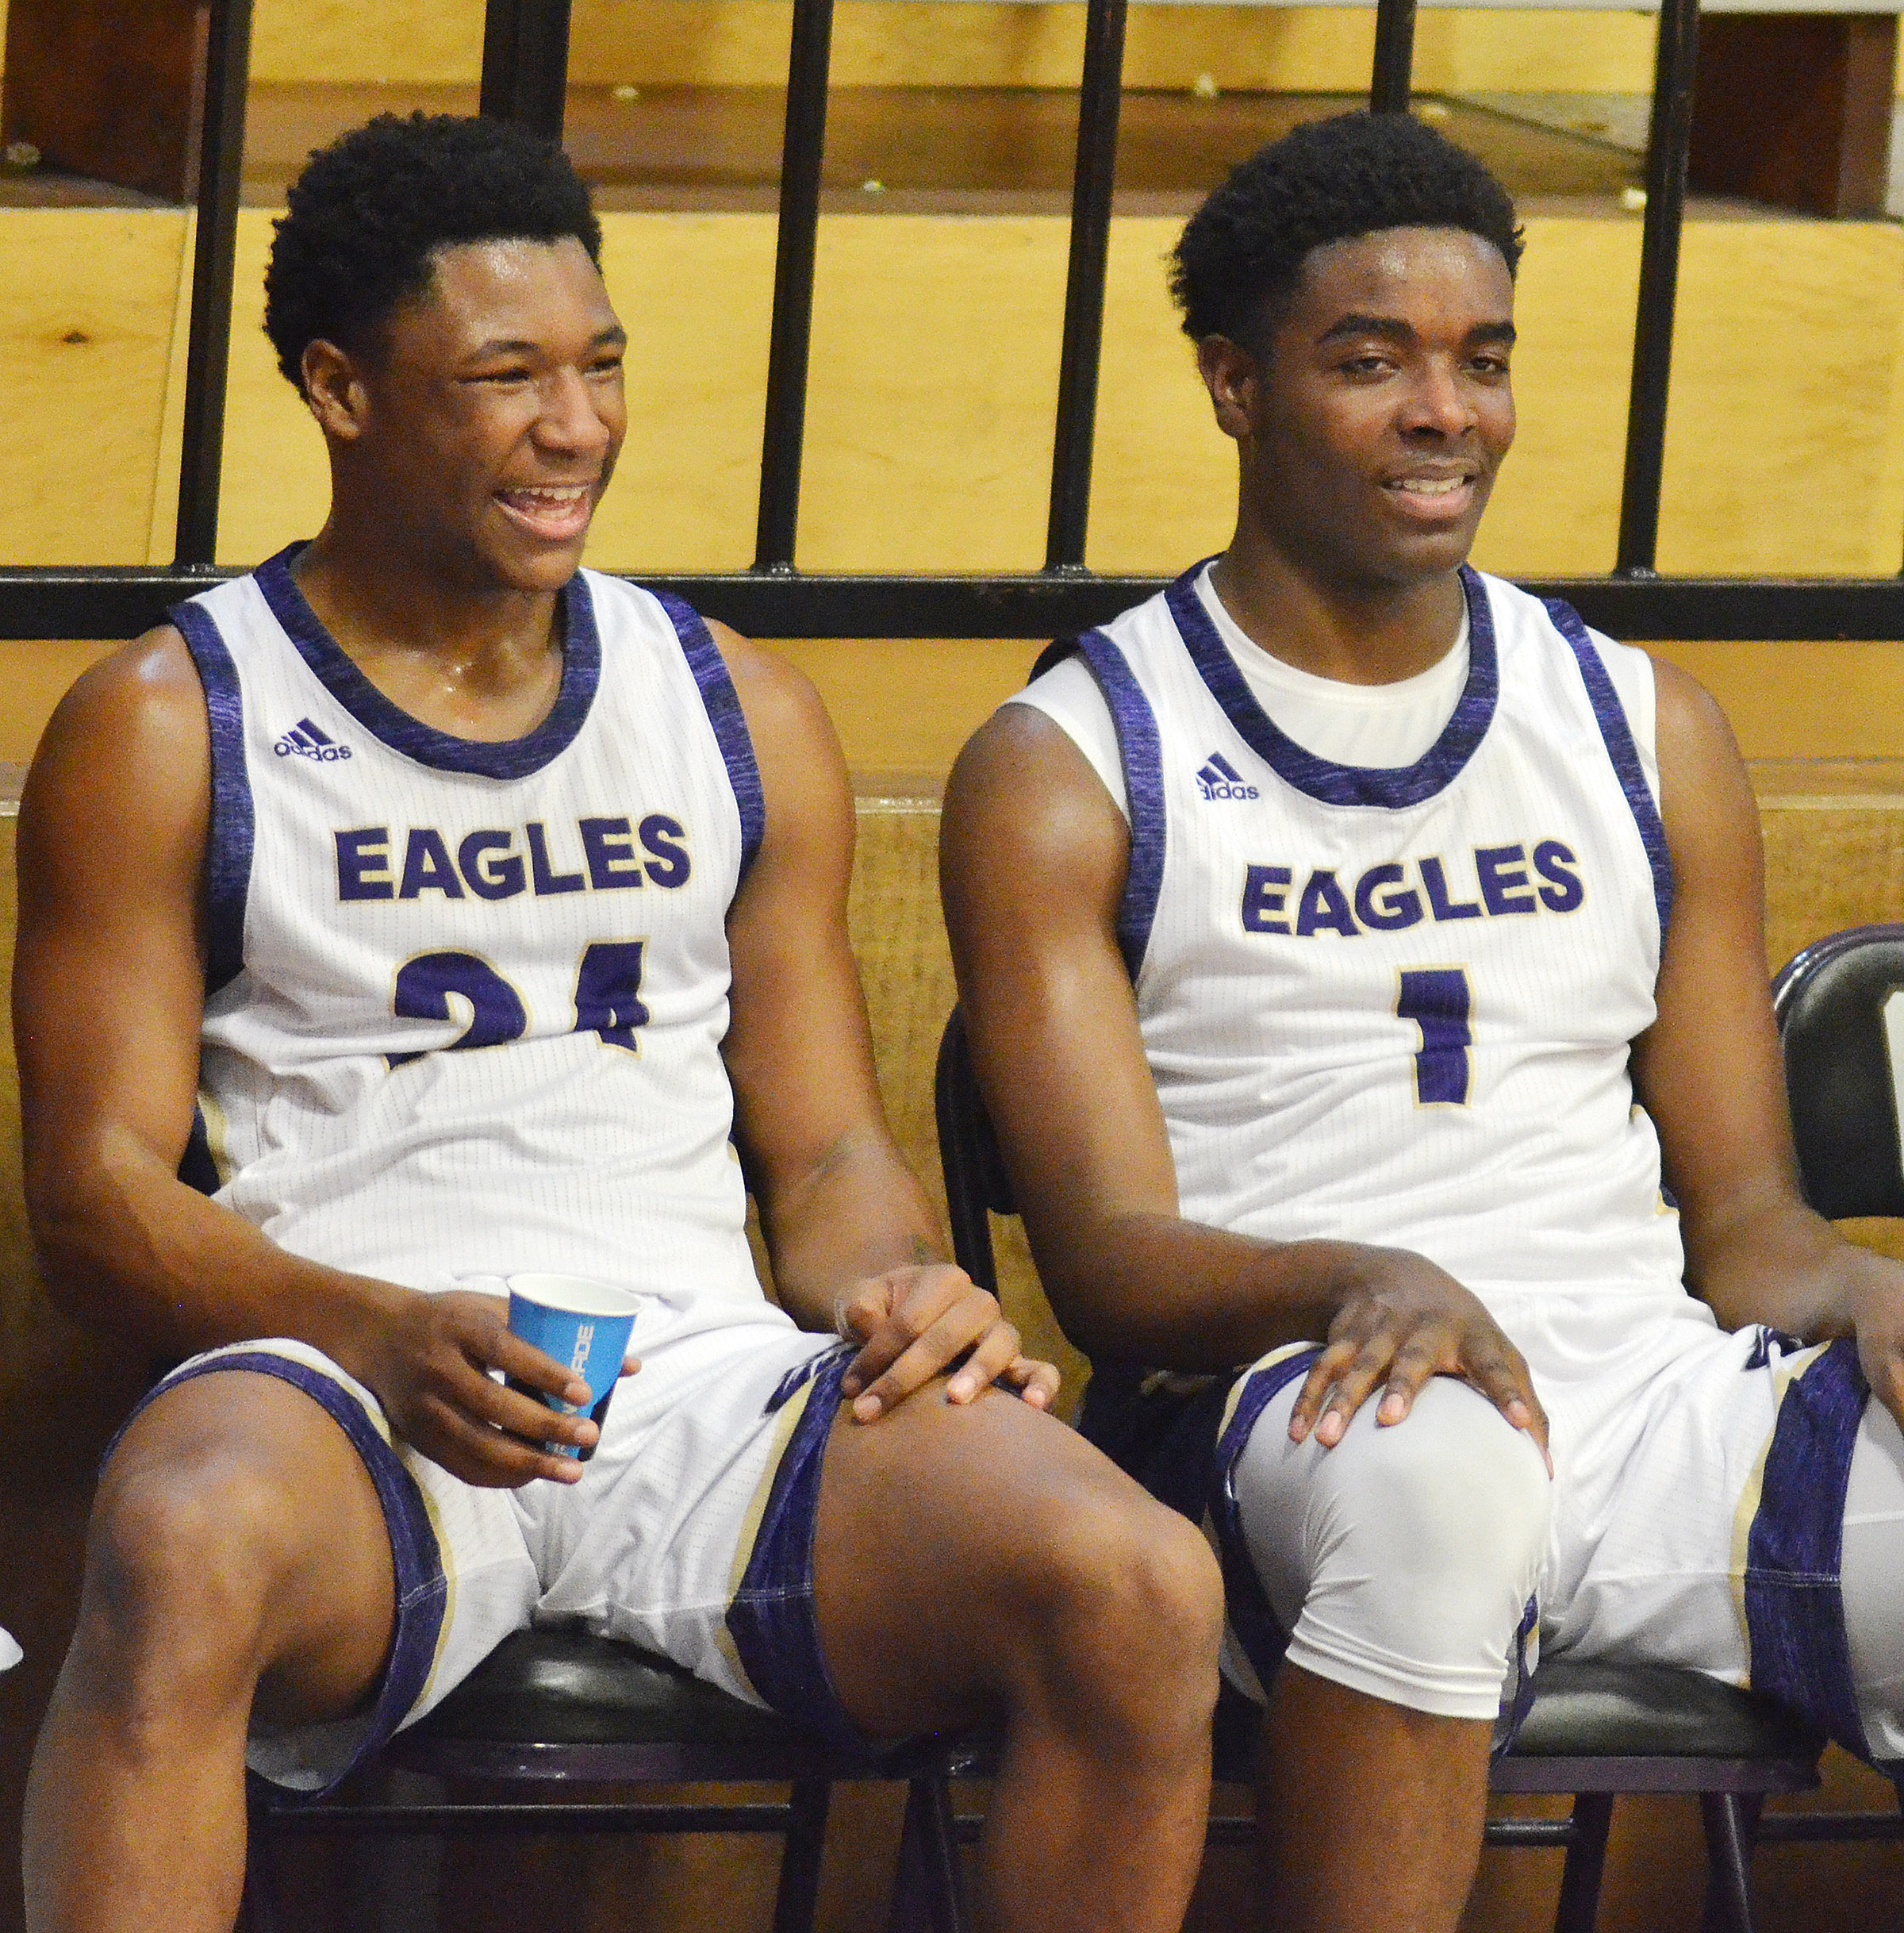 CHS junior Taj Sanders, at left, and senior Chanson Atkinson share a laugh while taking a break.